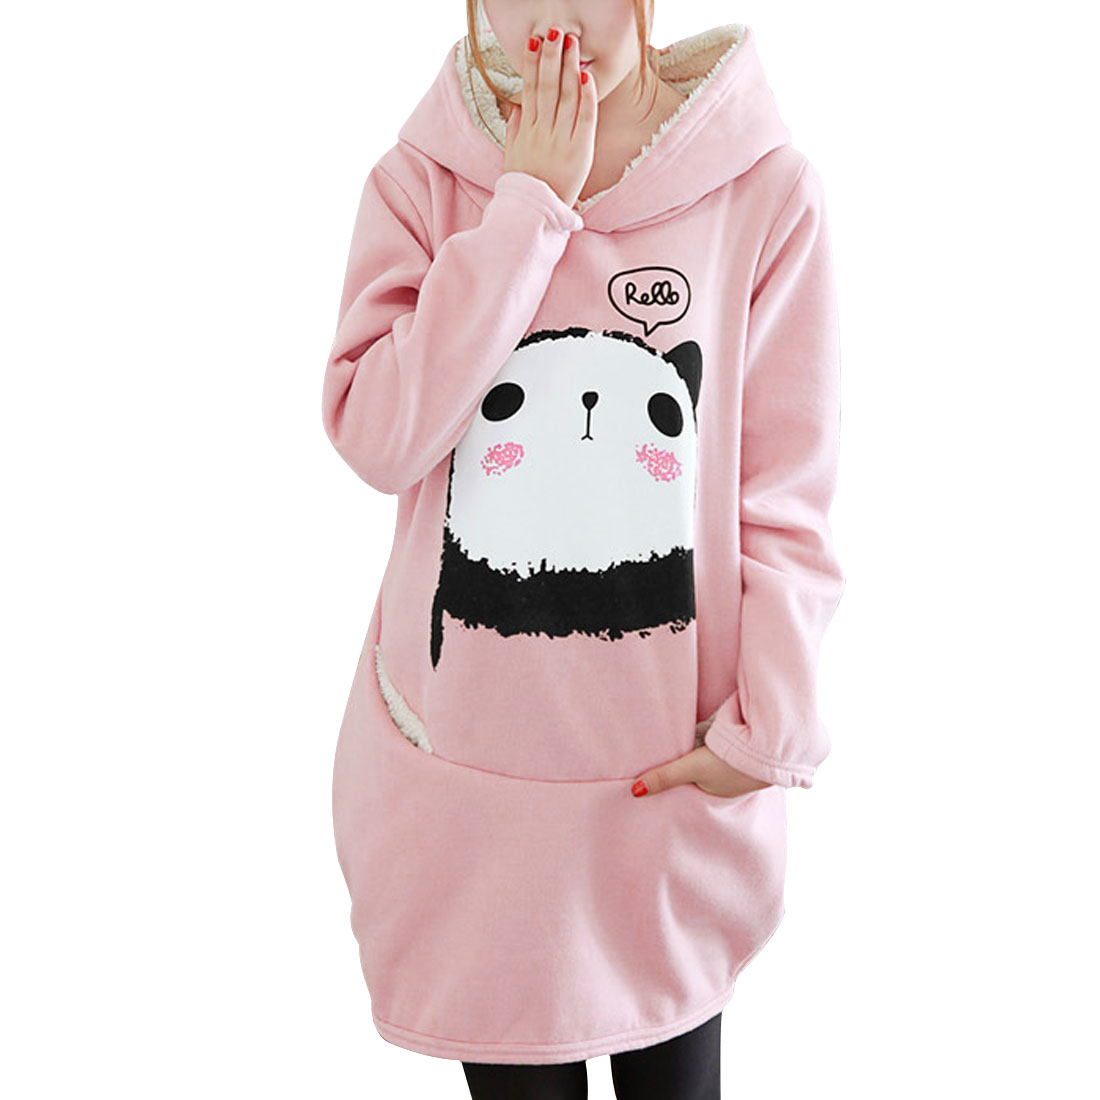 Unique Bargains Ladies Light Pink Long Sleeves Stylish Casual Pullover Hoodie XS at Sears.com